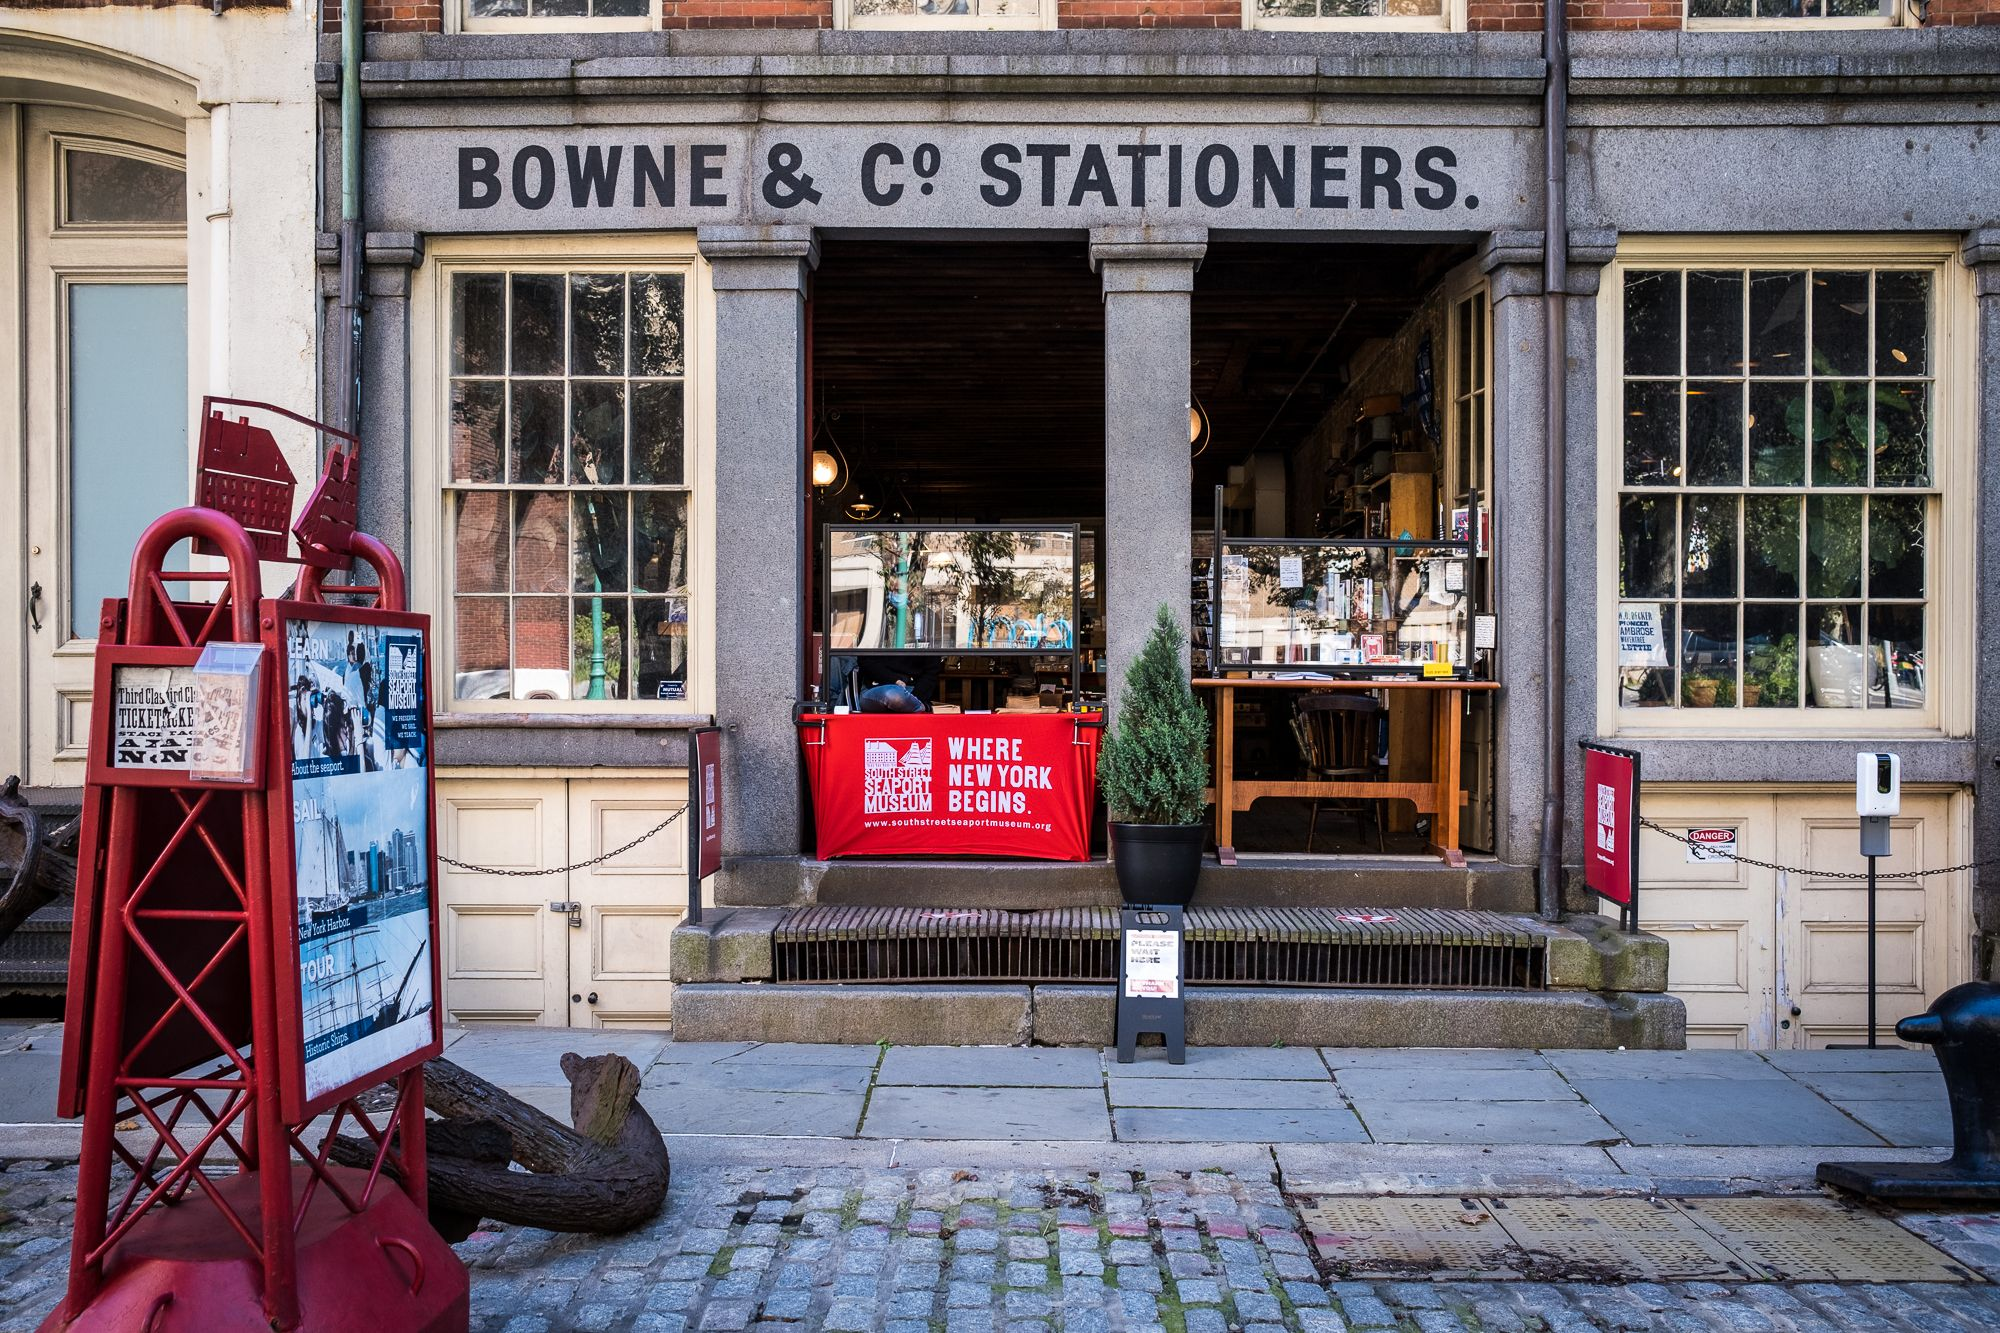 Bowne & Co. Letterpress Demonstrations at South Street Seaport Museum